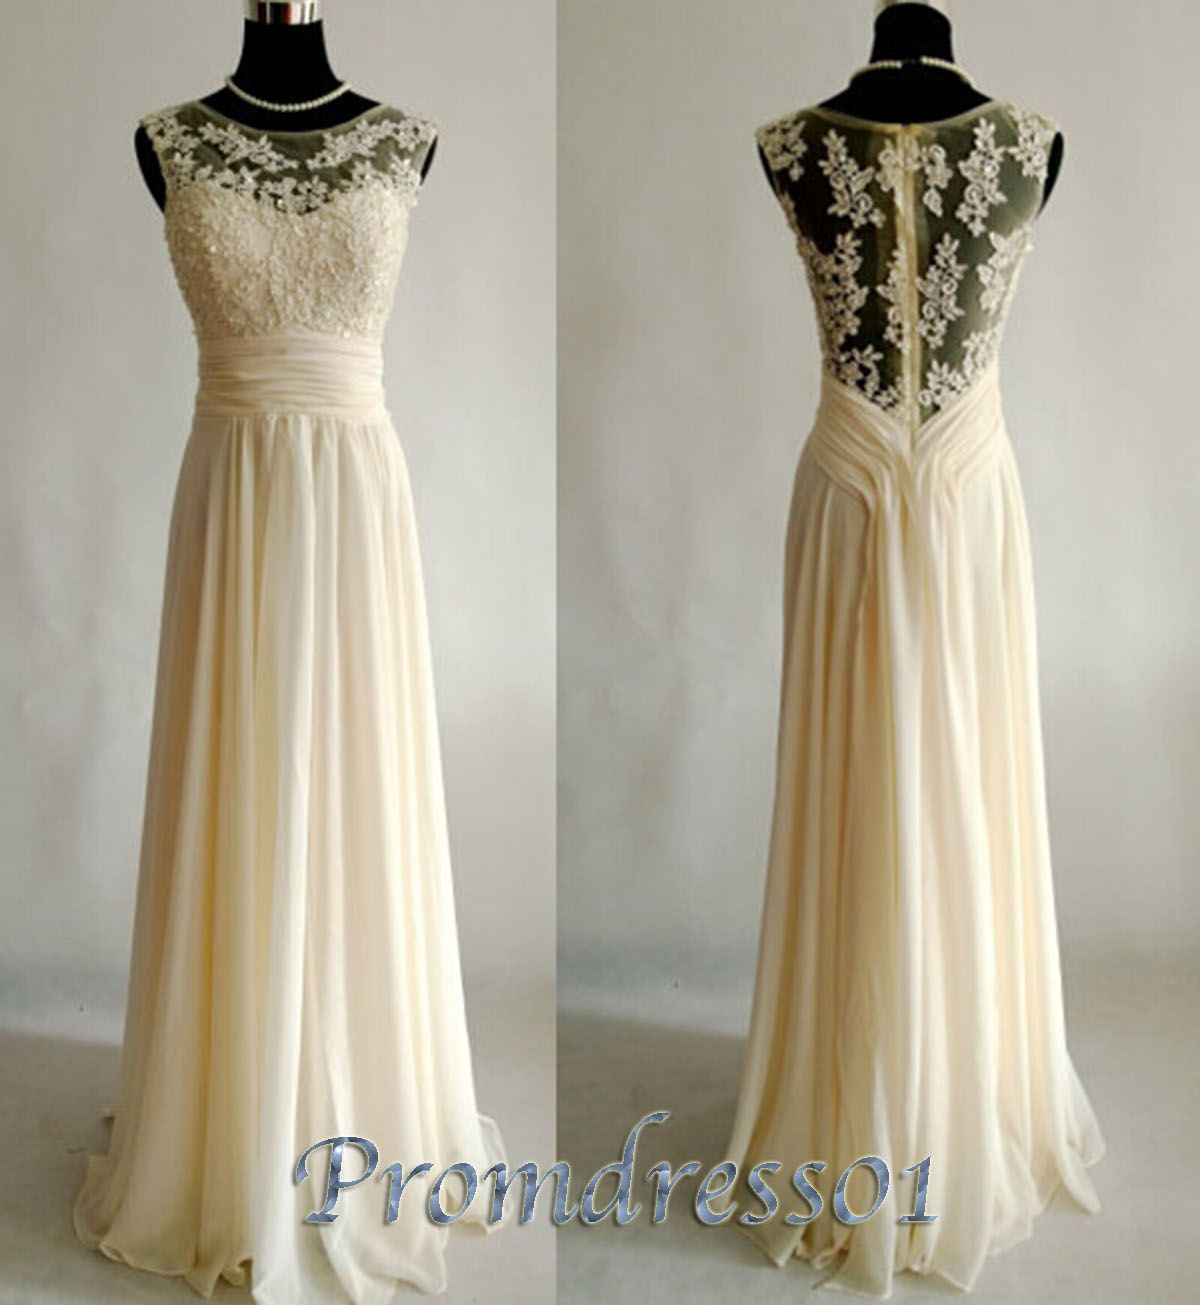 2015 creamy lace chiffon prom dress | DRESS | Pinterest | Designs ...